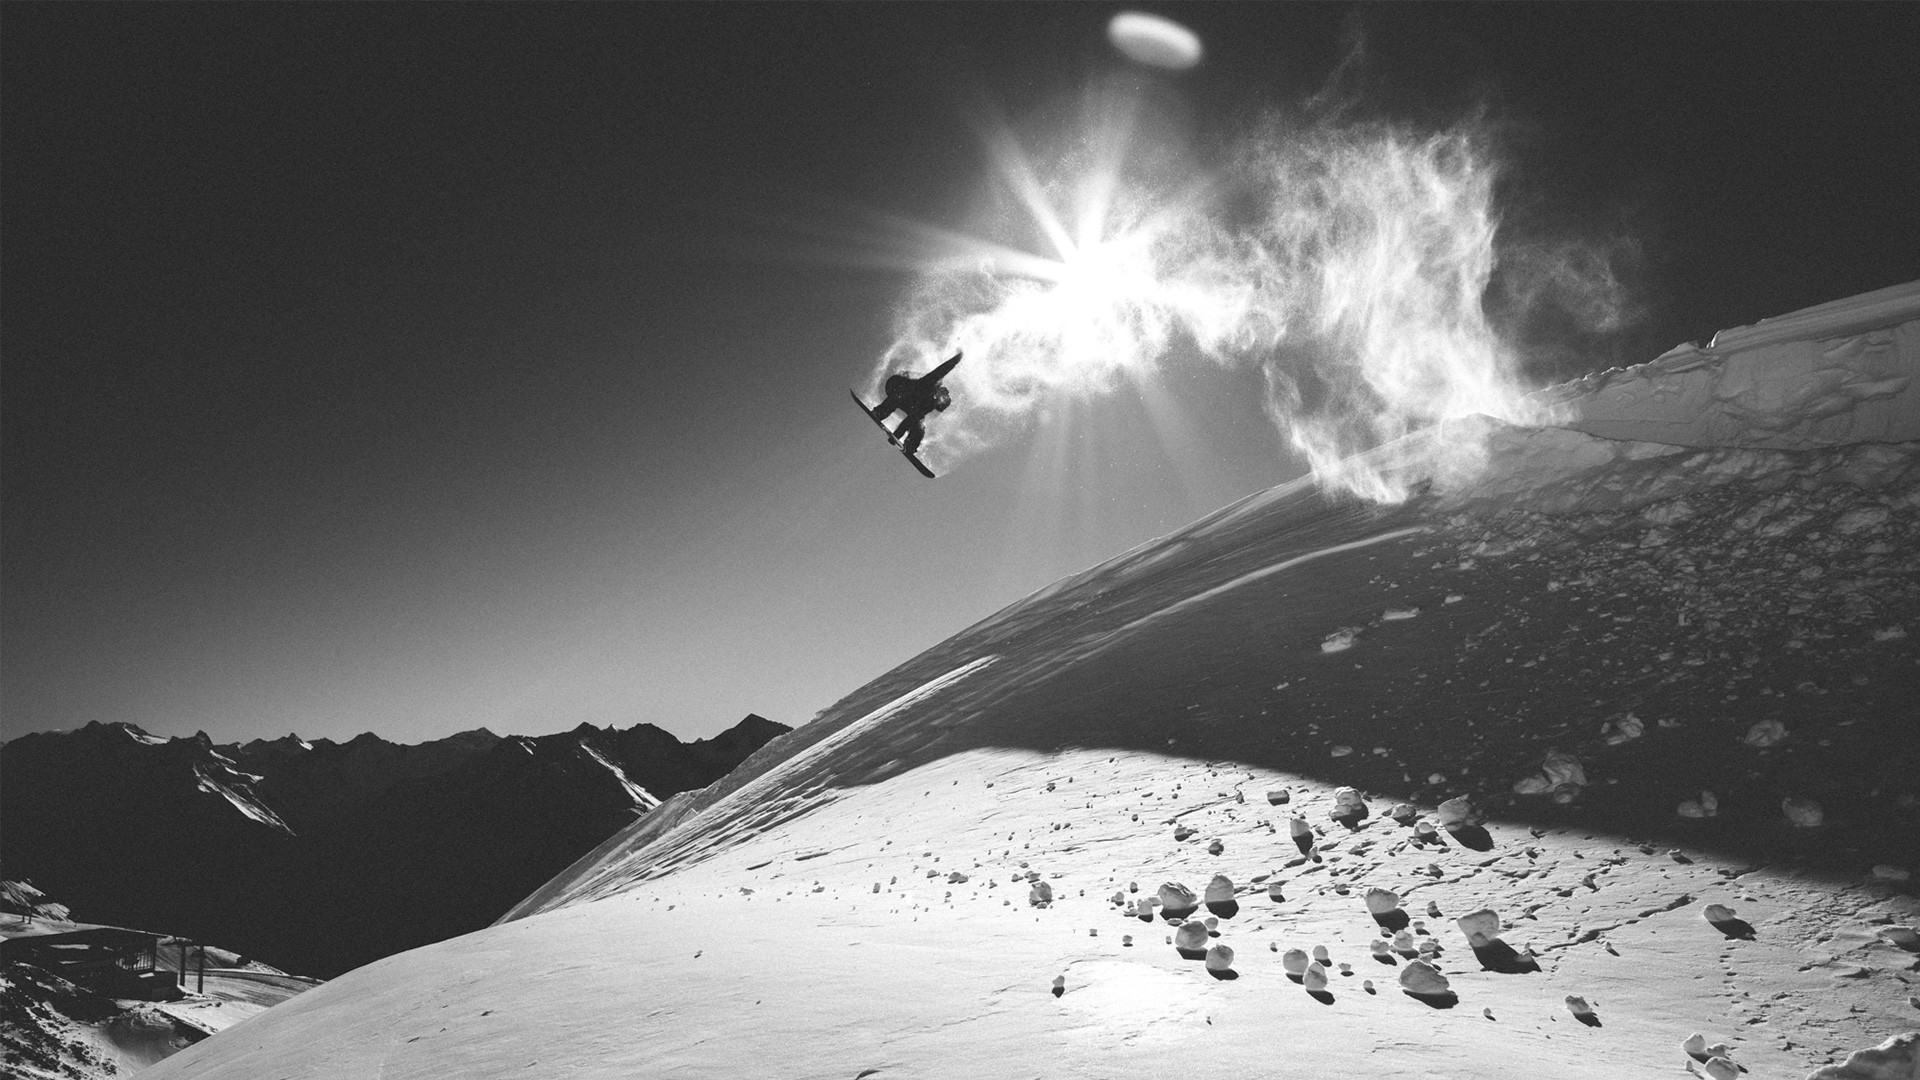 Extreme Skiing Wallpaper: Extreme Snowboarding Wallpapers (62+ Images